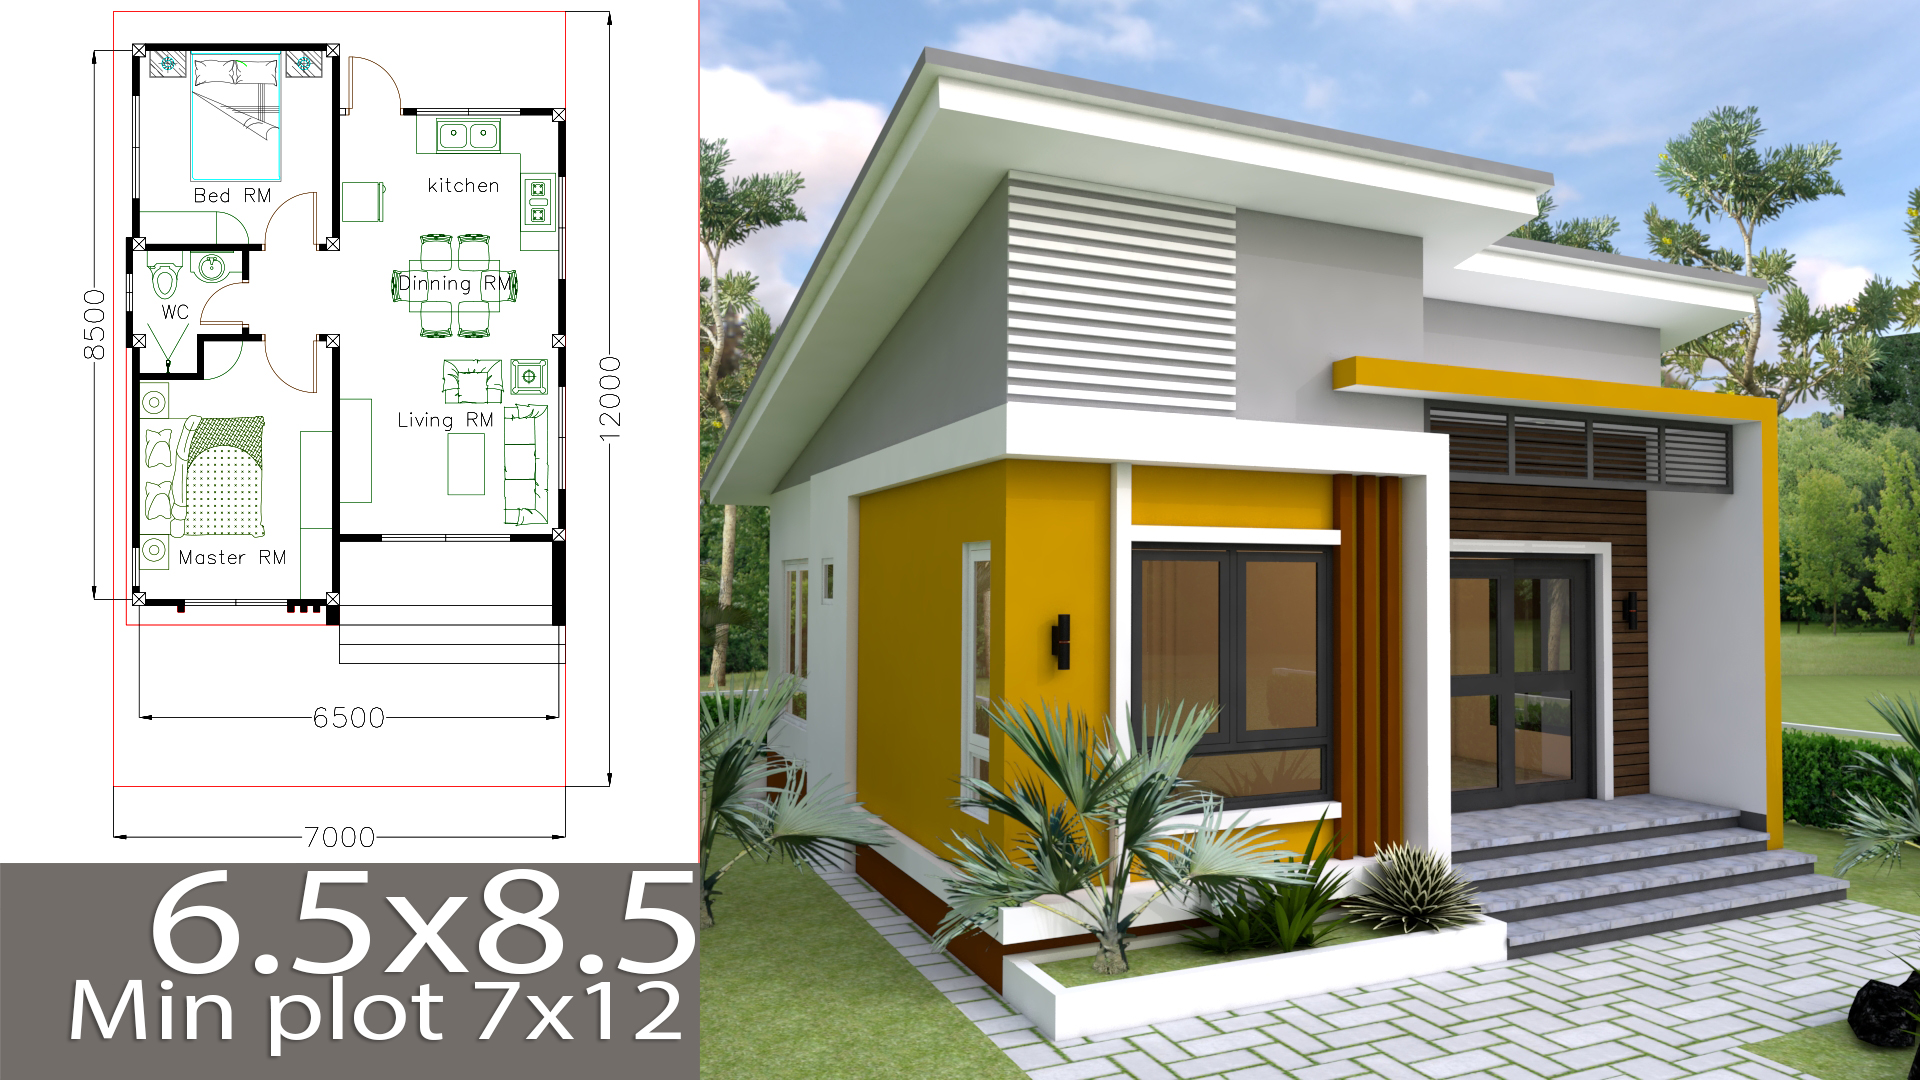 House Plans 6 5x8 5m With 2 Bedrooms House Plans Free Downloads